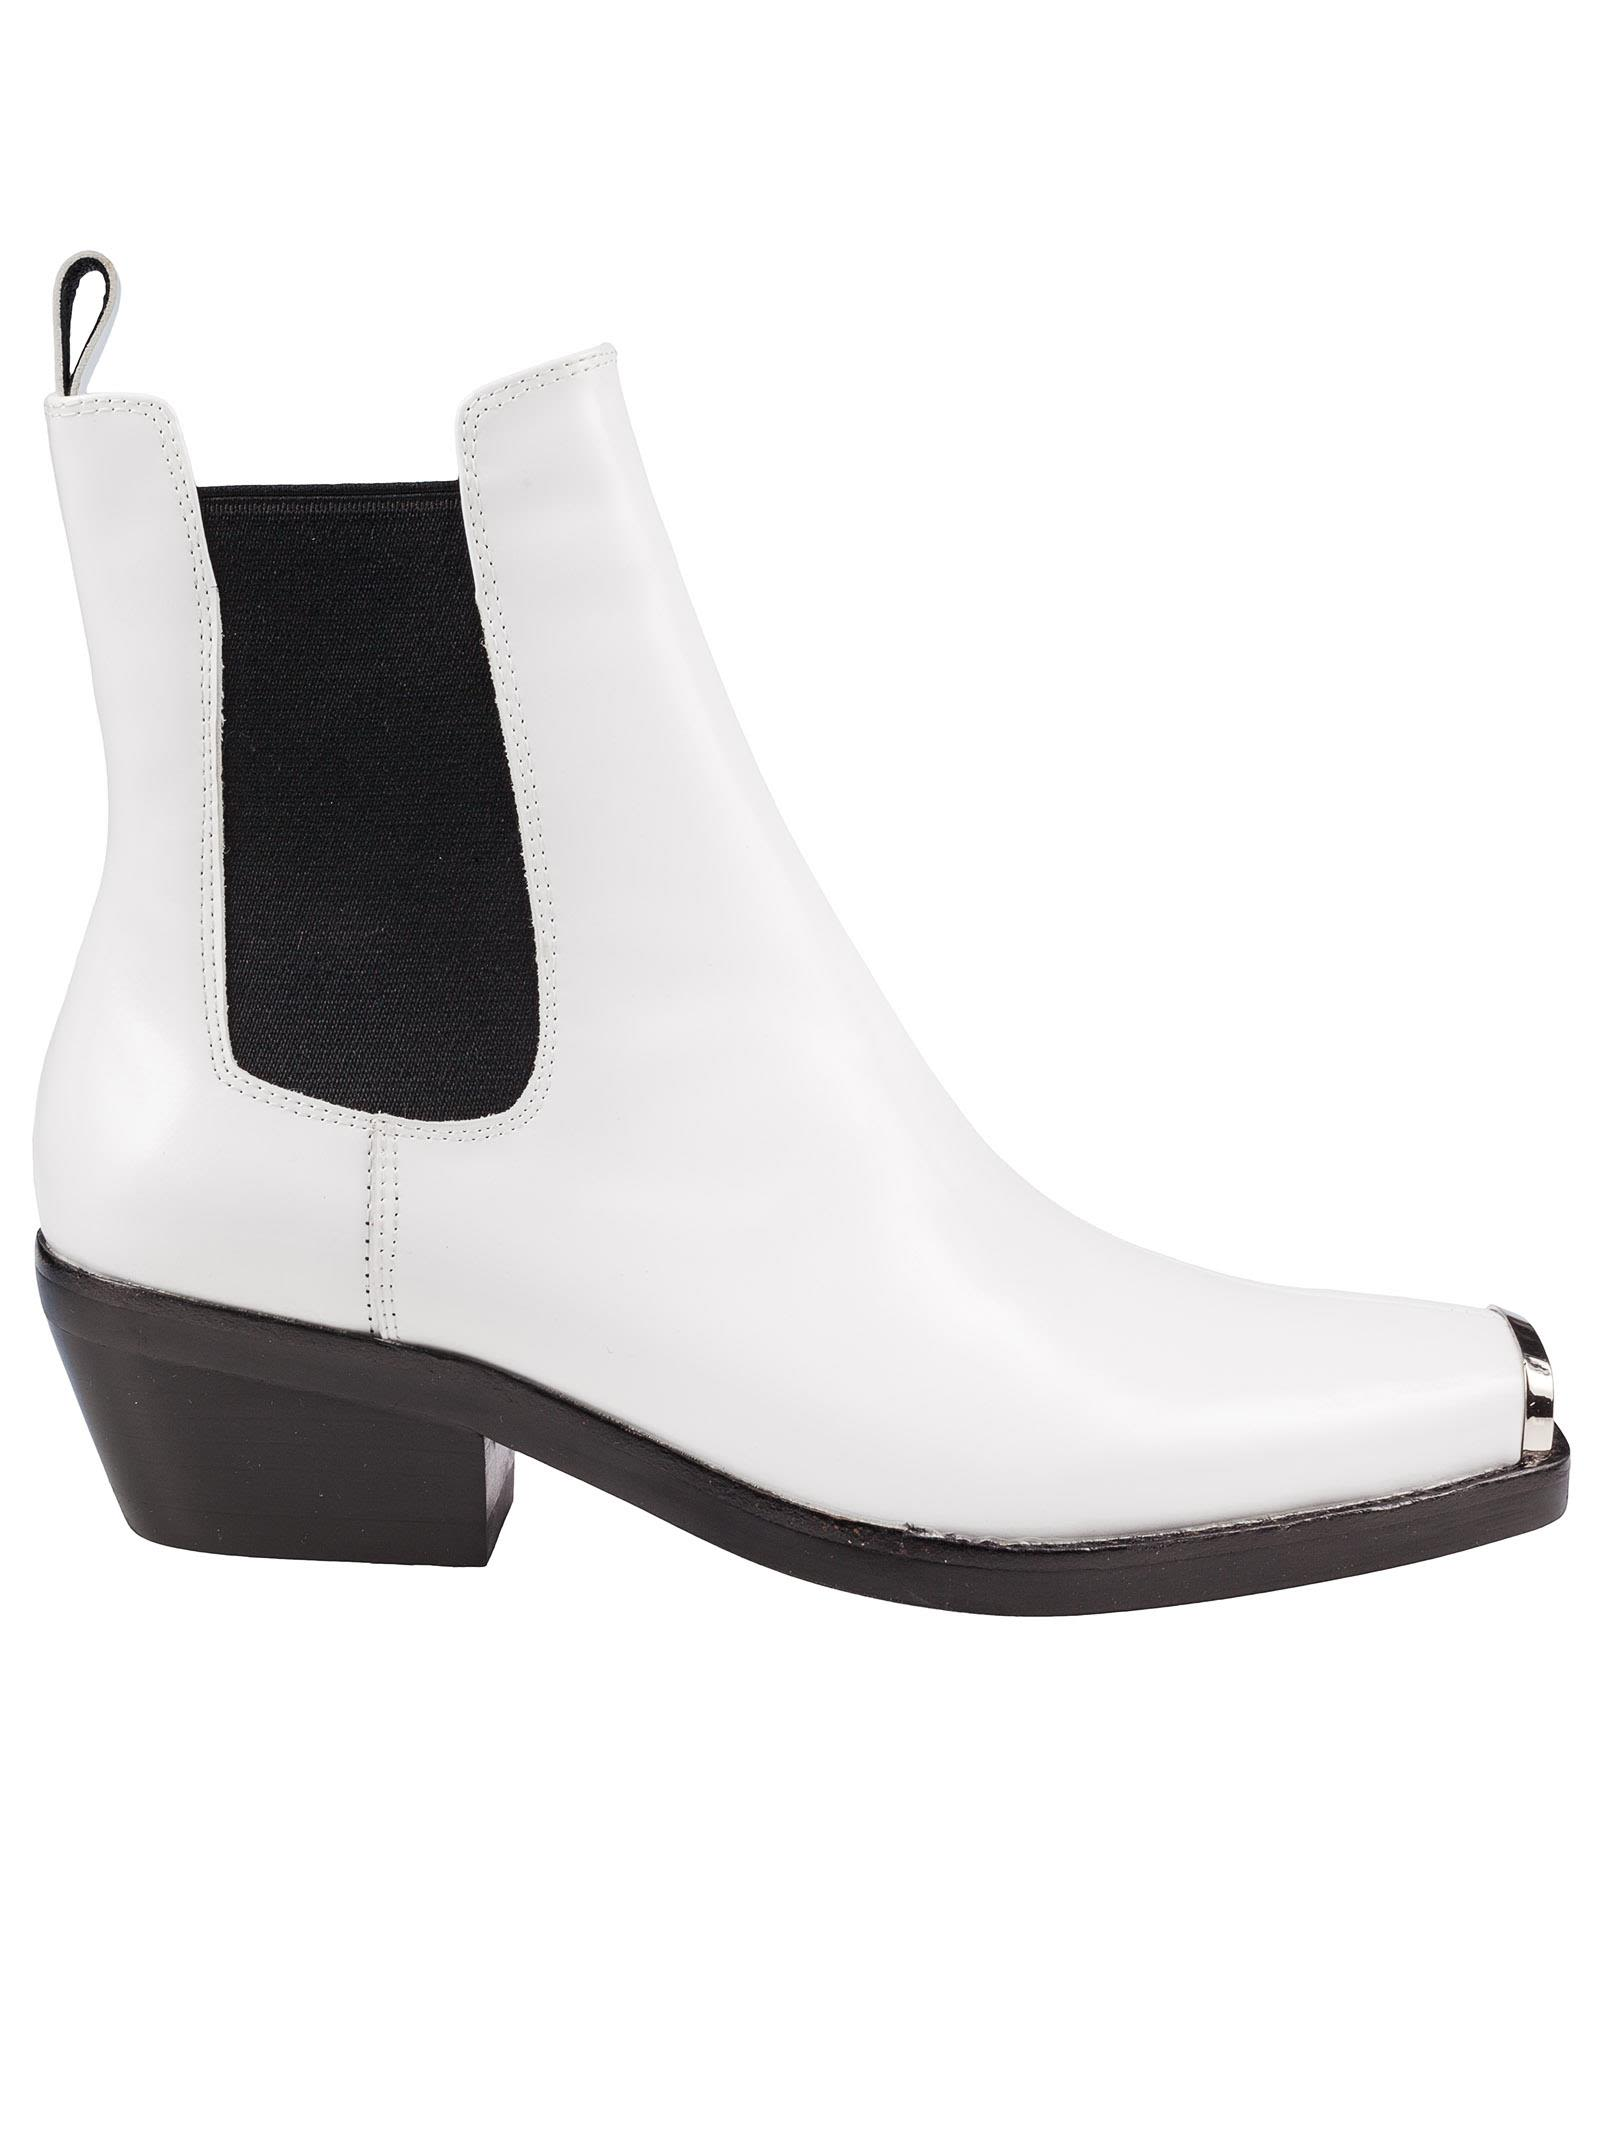 JEFFREY CAMPBELL | Jeffrey Campbell Poker Chelsea Boots | Clouty